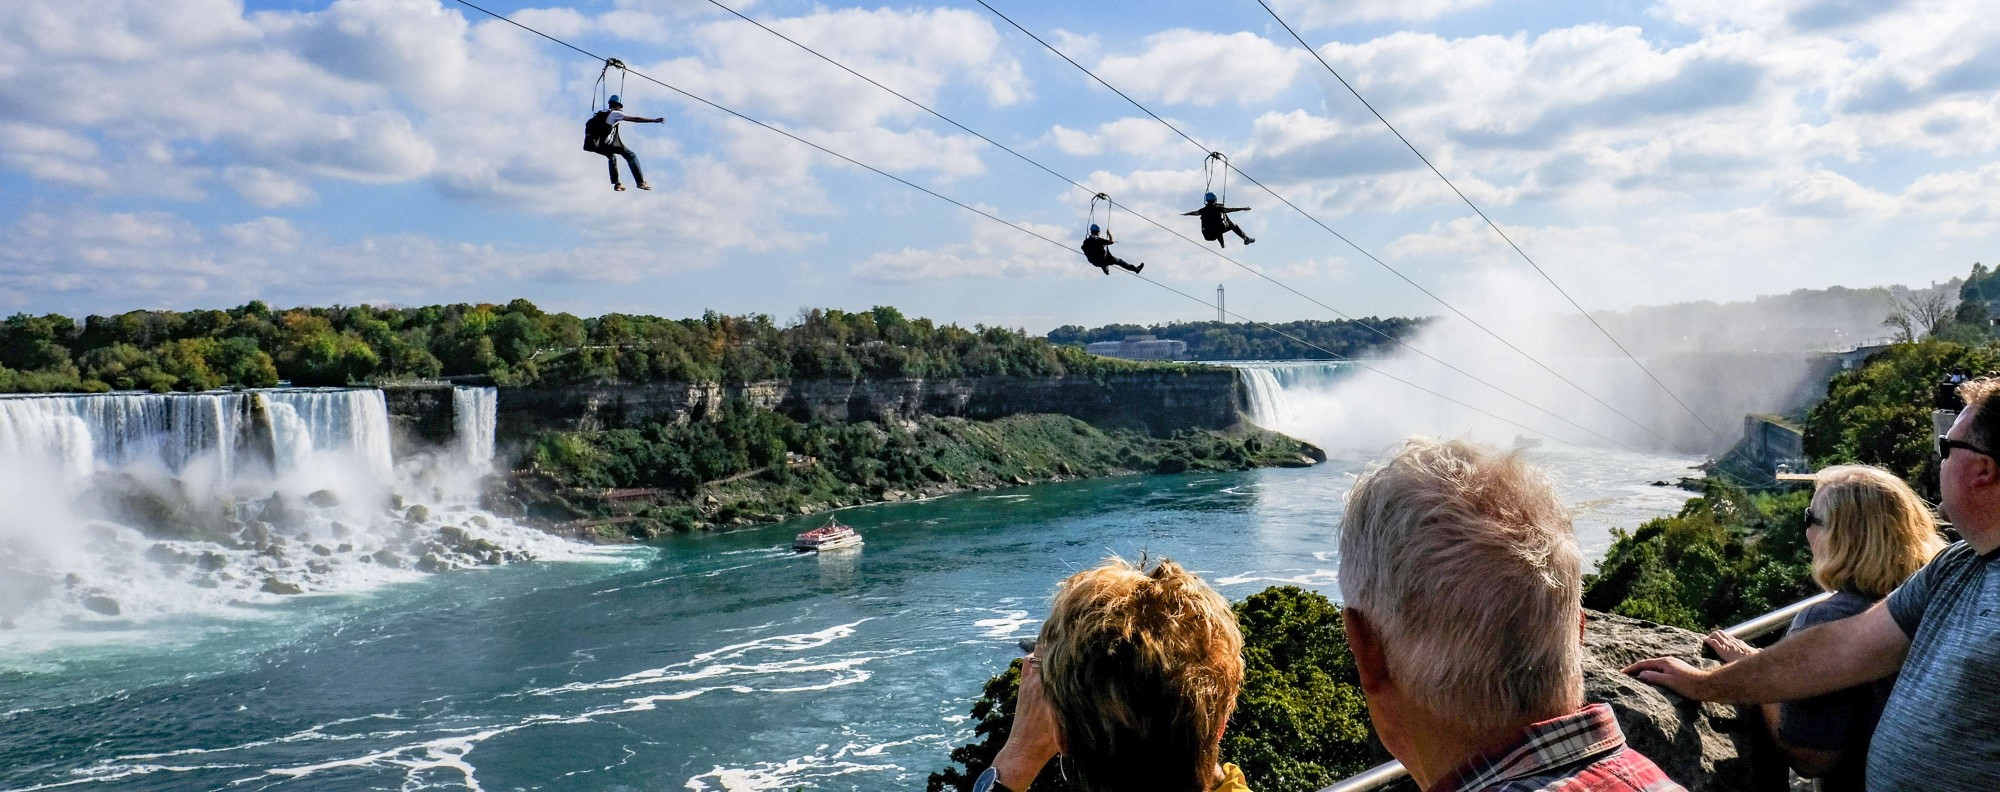 Tourists glide by zip line over Niagara Falls.